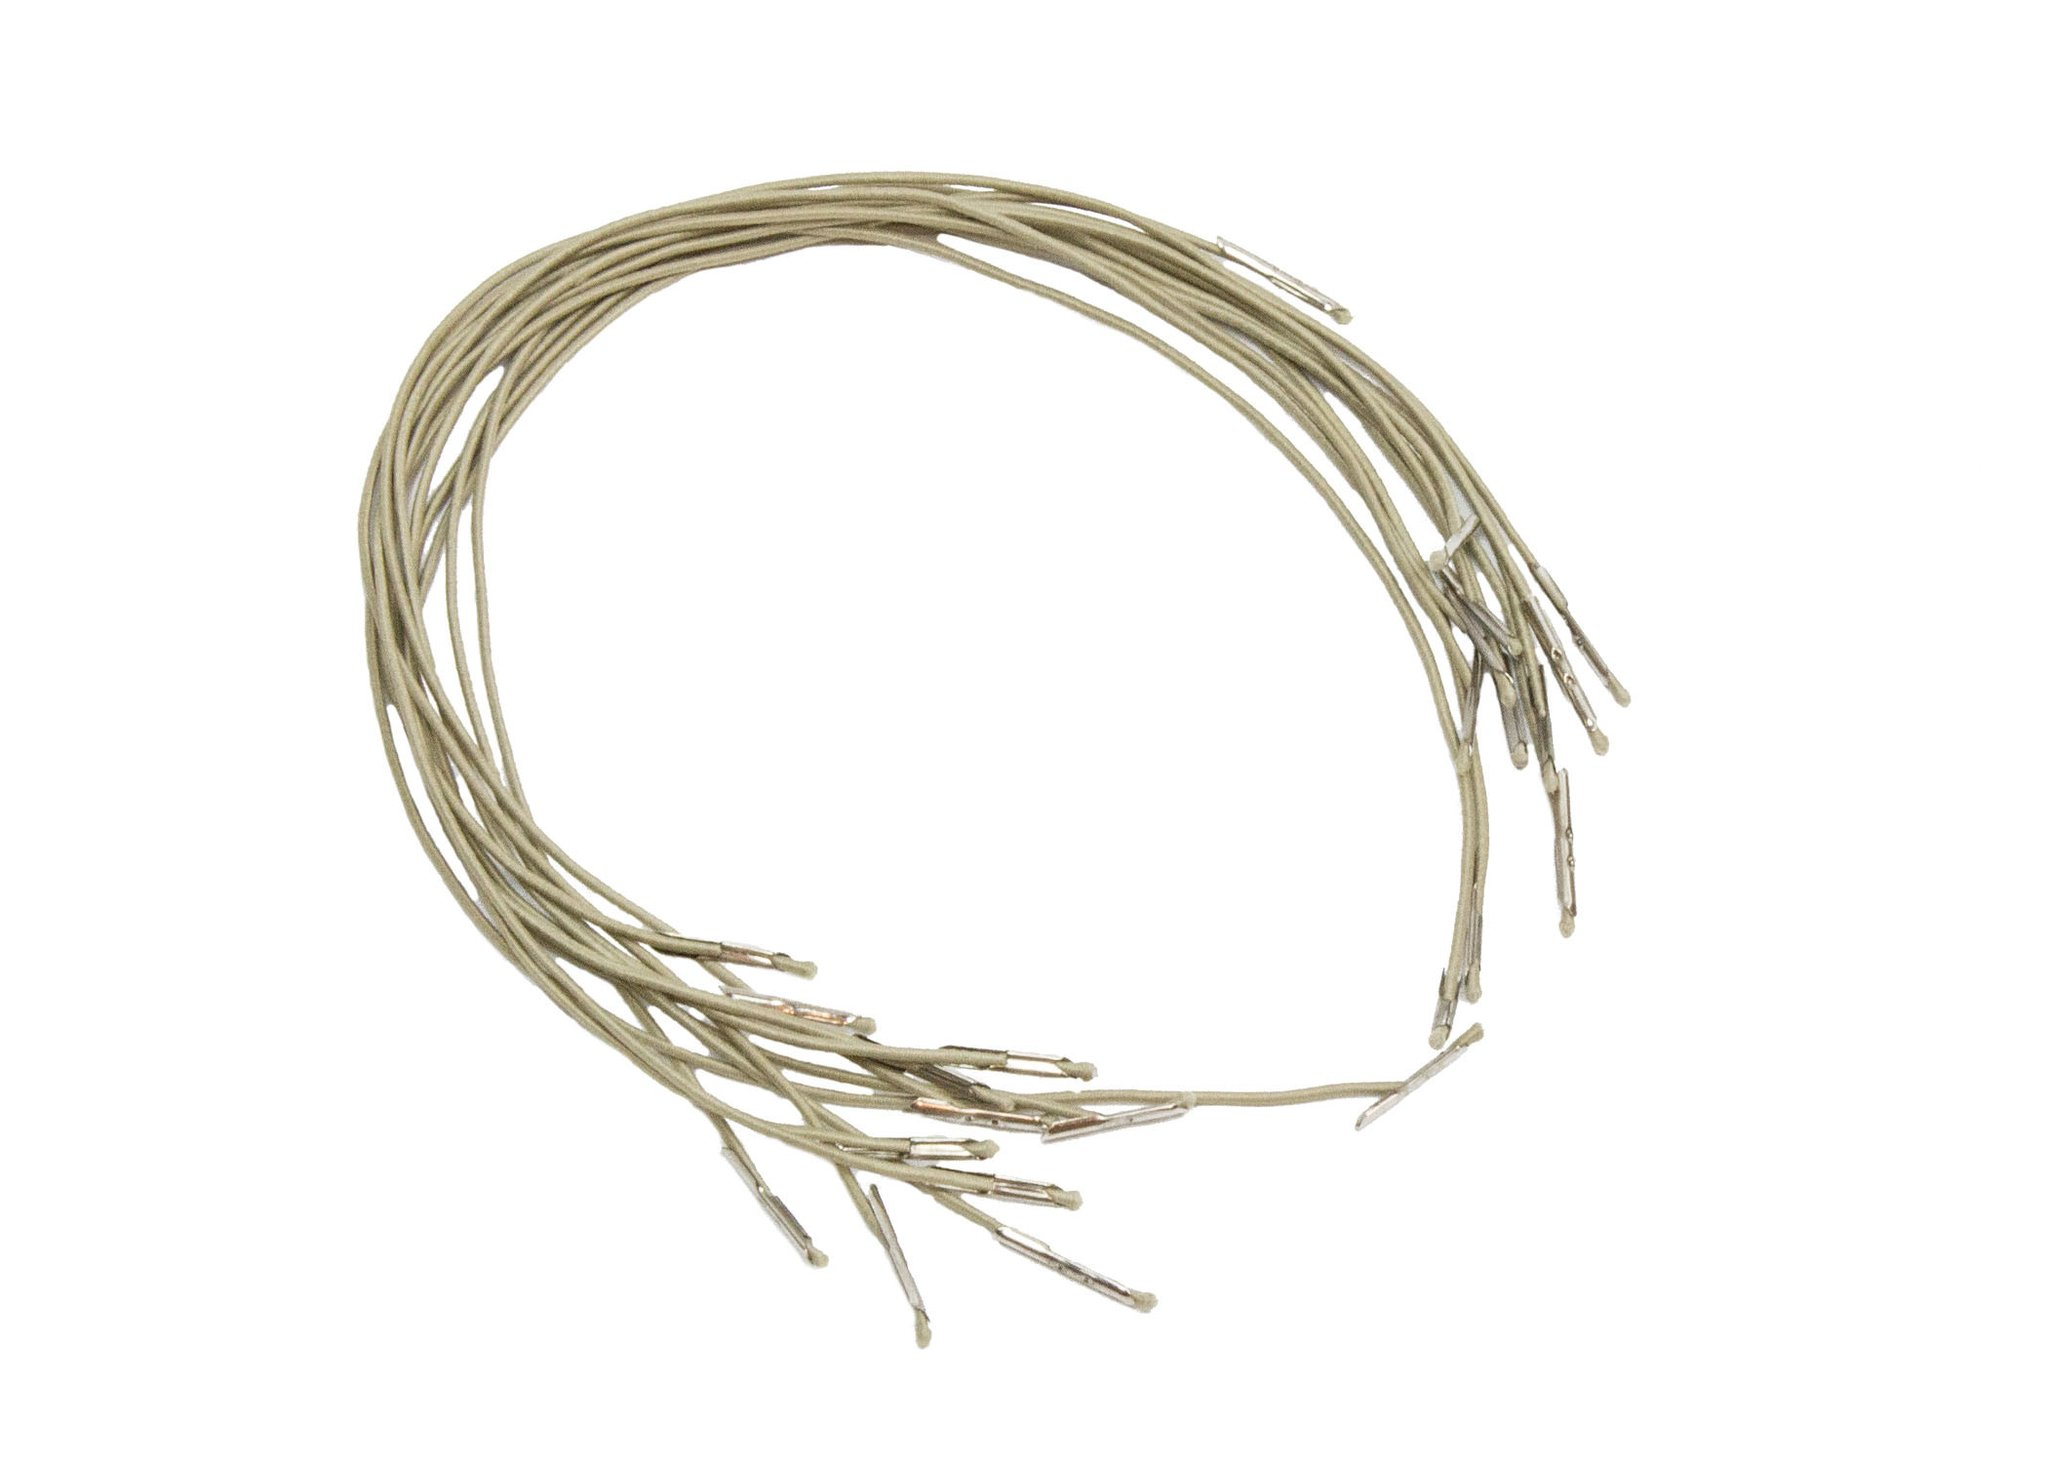 elastic cord with metal ends